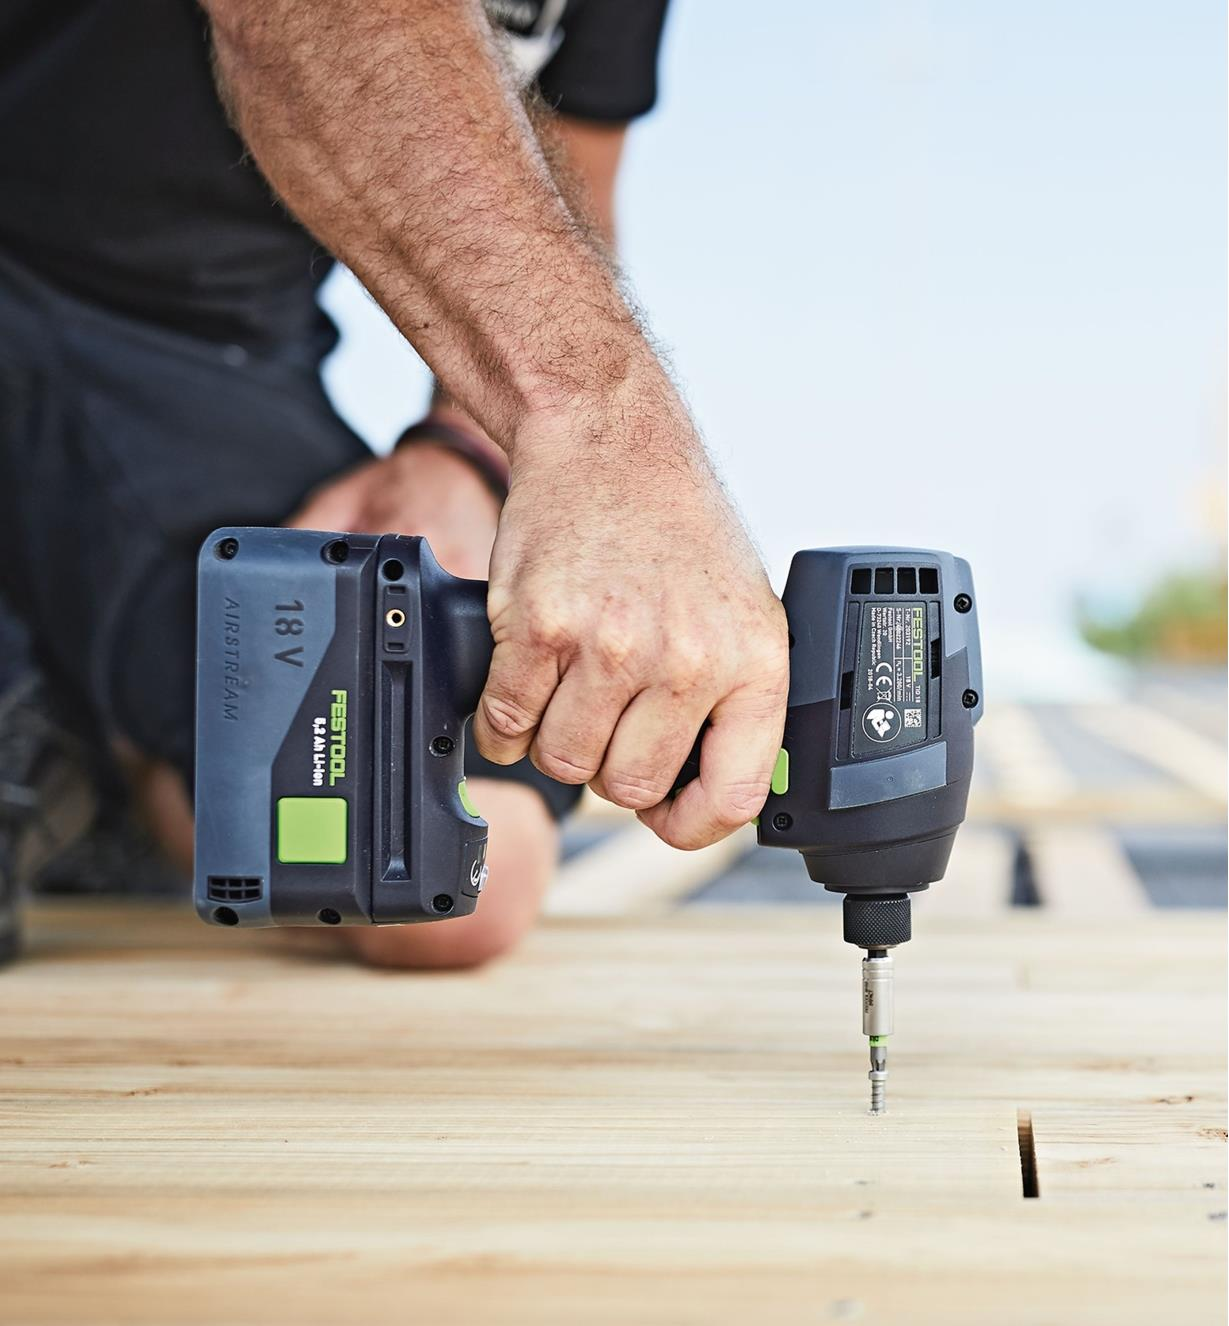 Using the Festool TID 18 Cordless Impact Screwdriver on a construction site